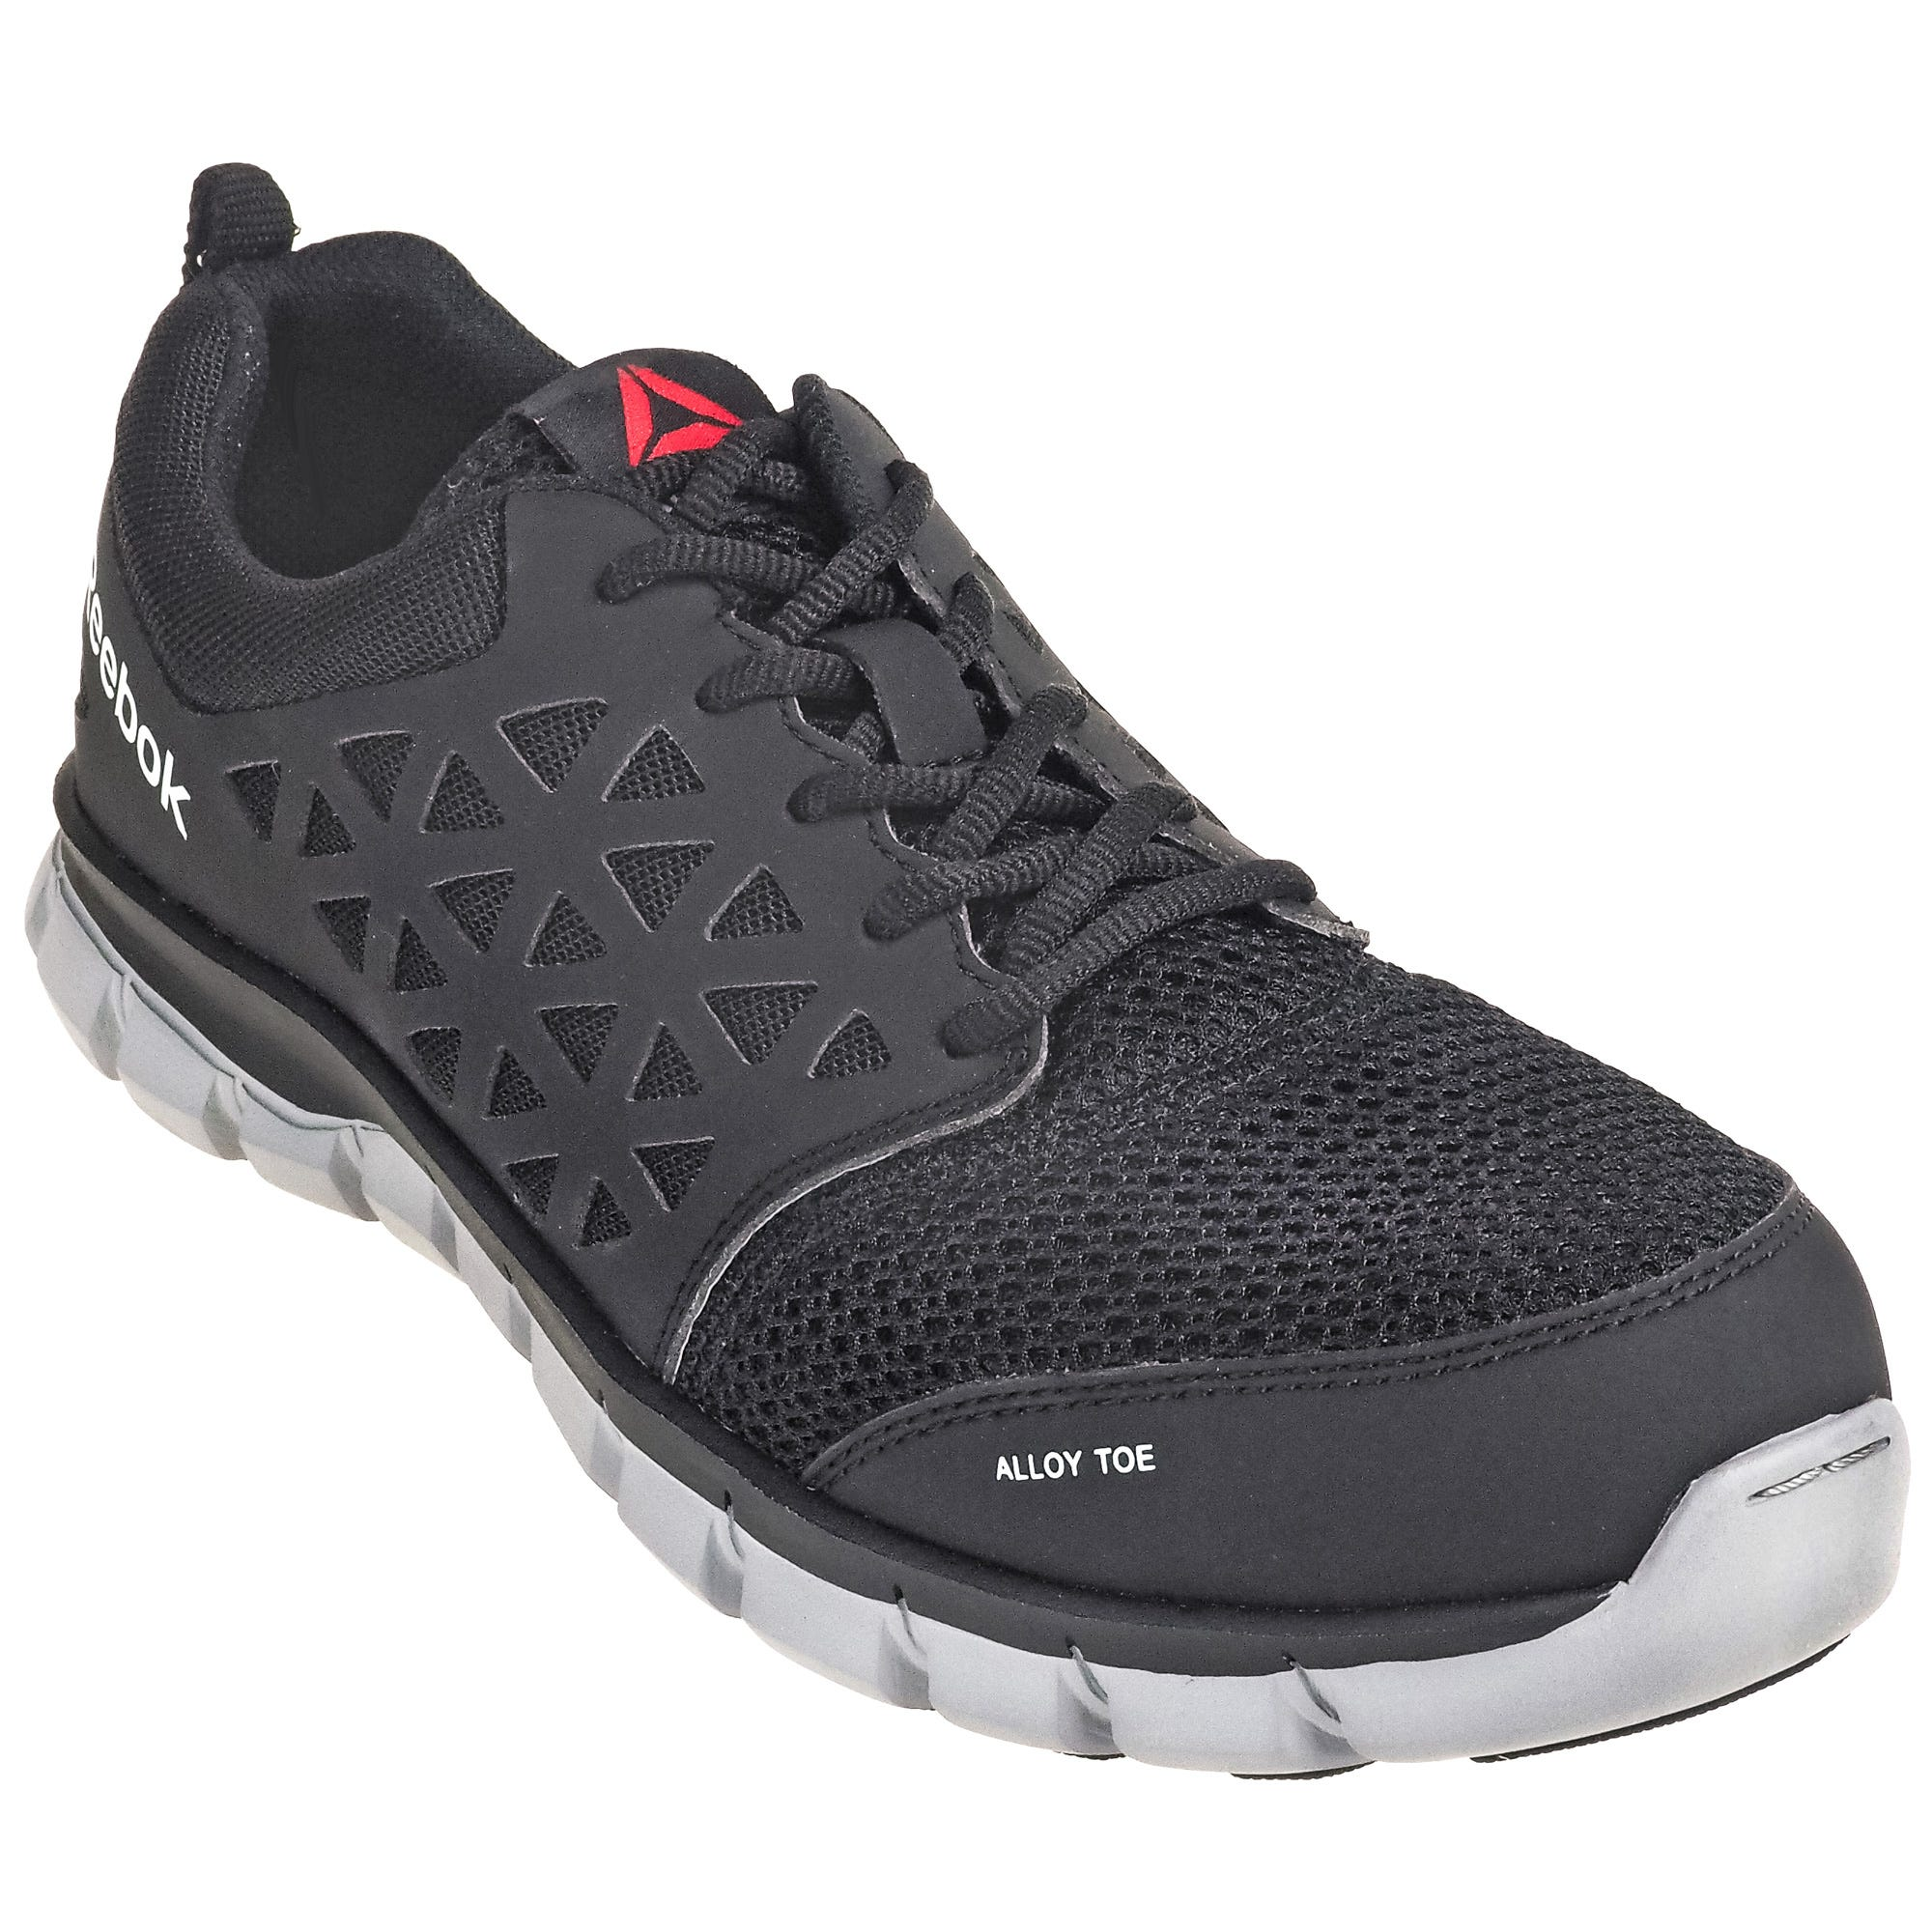 Reebok Women's RB041 Black Alloy Toe EH Athletic Sublite Cushion Work Shoes